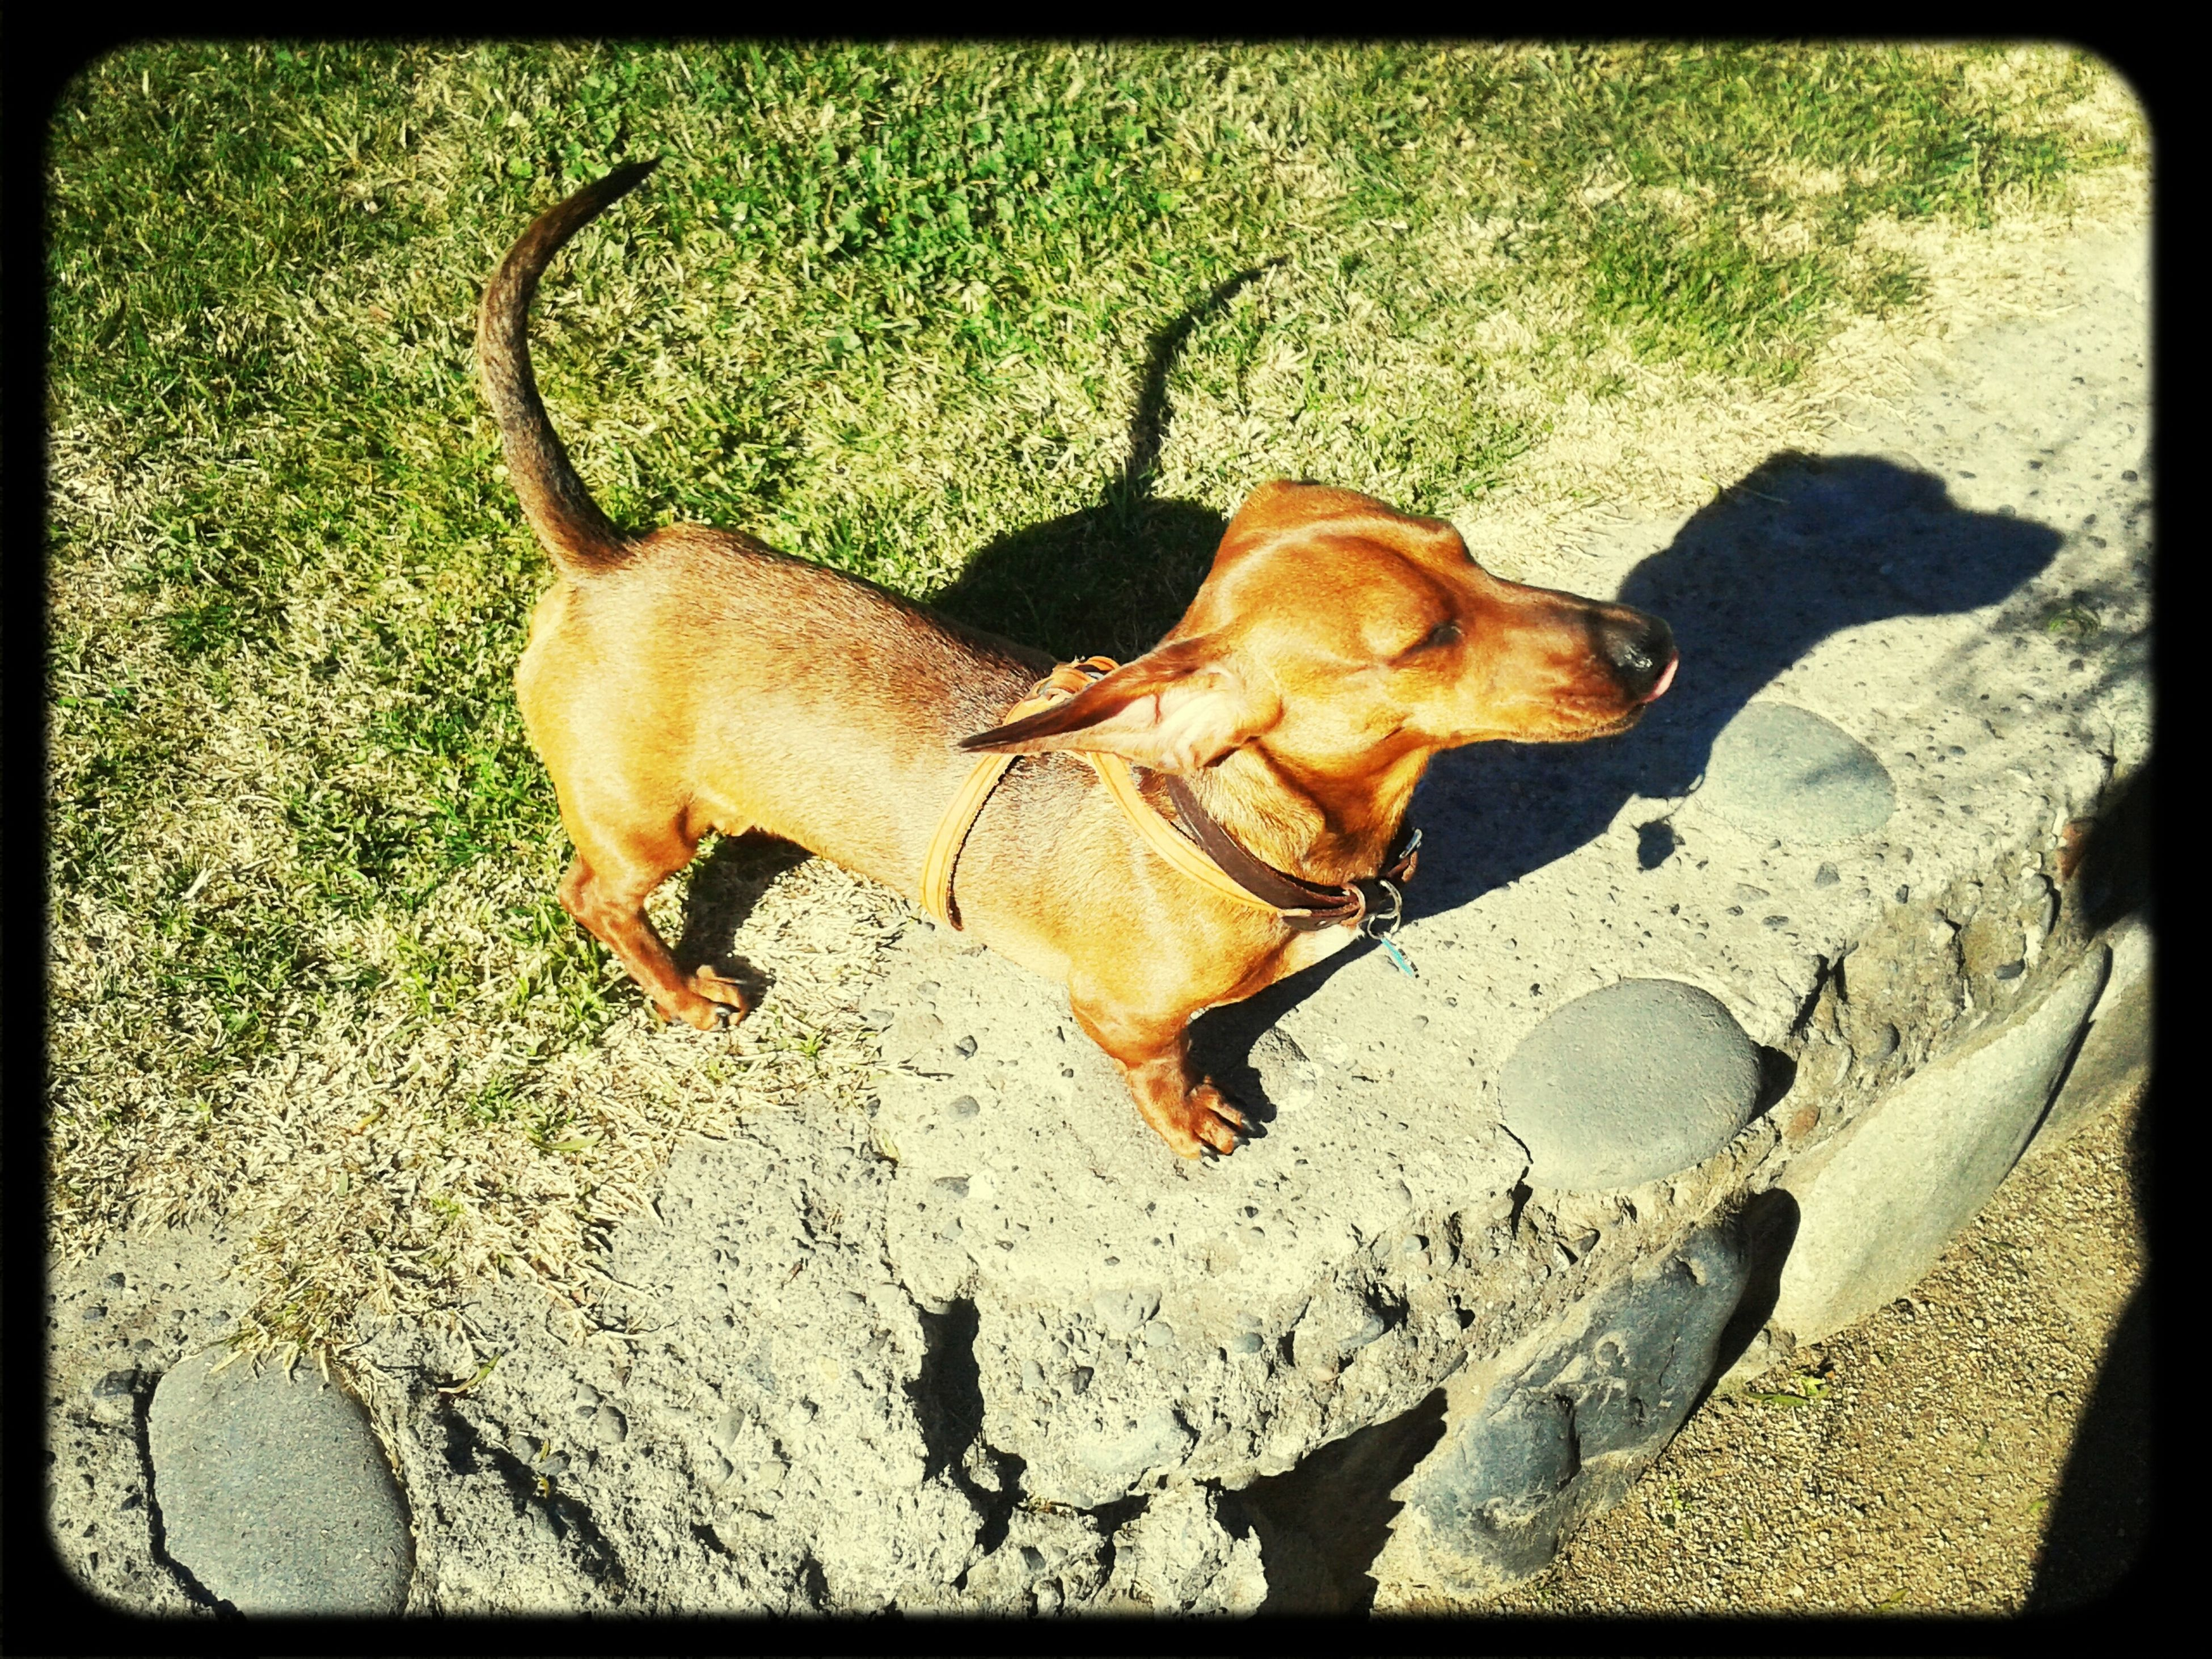 transfer print, auto post production filter, high angle view, outdoors, day, sunlight, mammal, animal themes, domestic animals, field, standing, dog, shadow, no people, street, rock - object, one animal, nature, full length, stone - object